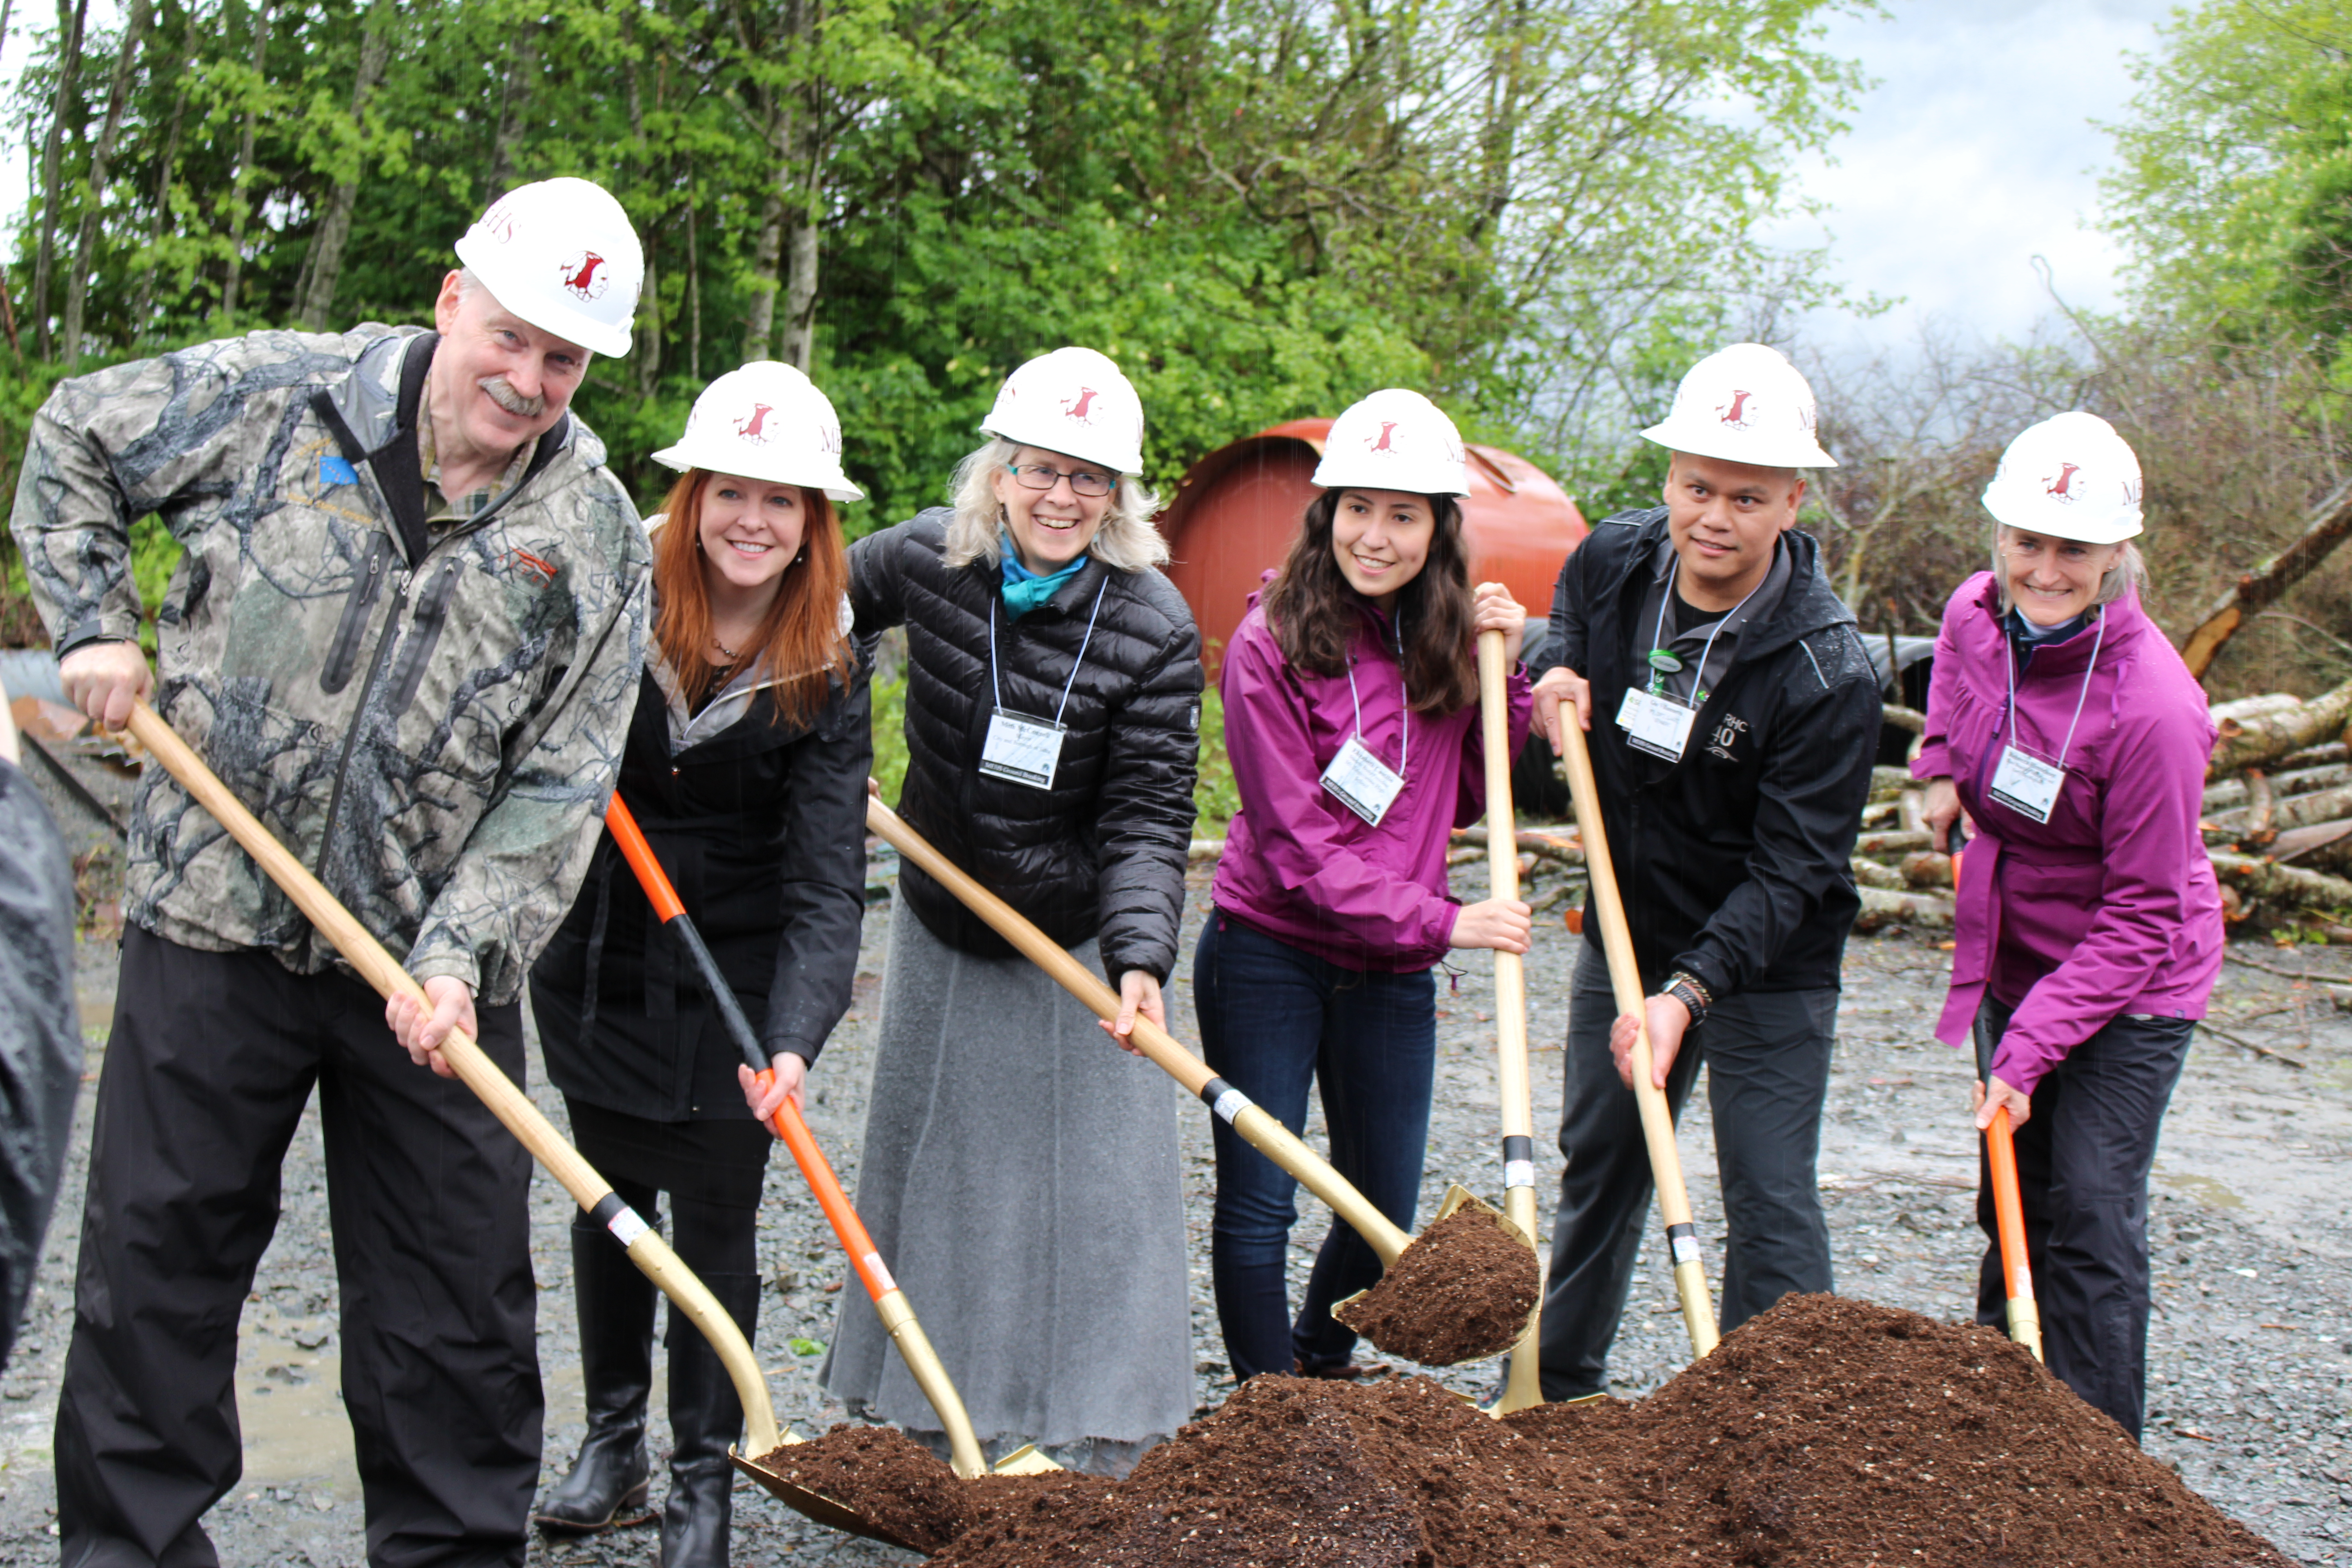 Senator Stedman, Sitka Mayor Mim McConnell, Interim Education Commissioner Dr. Susan McCauley, MEHS Student Body President Elizabeth Castillo, SEARHC Physical Therapy Dept. Dr. Gio Villanueva, Alaska State School Board of Education and Early Development Member Rebecca Himshoo at the groundbreaking ceremony for the MEHS Aquatic Facility.